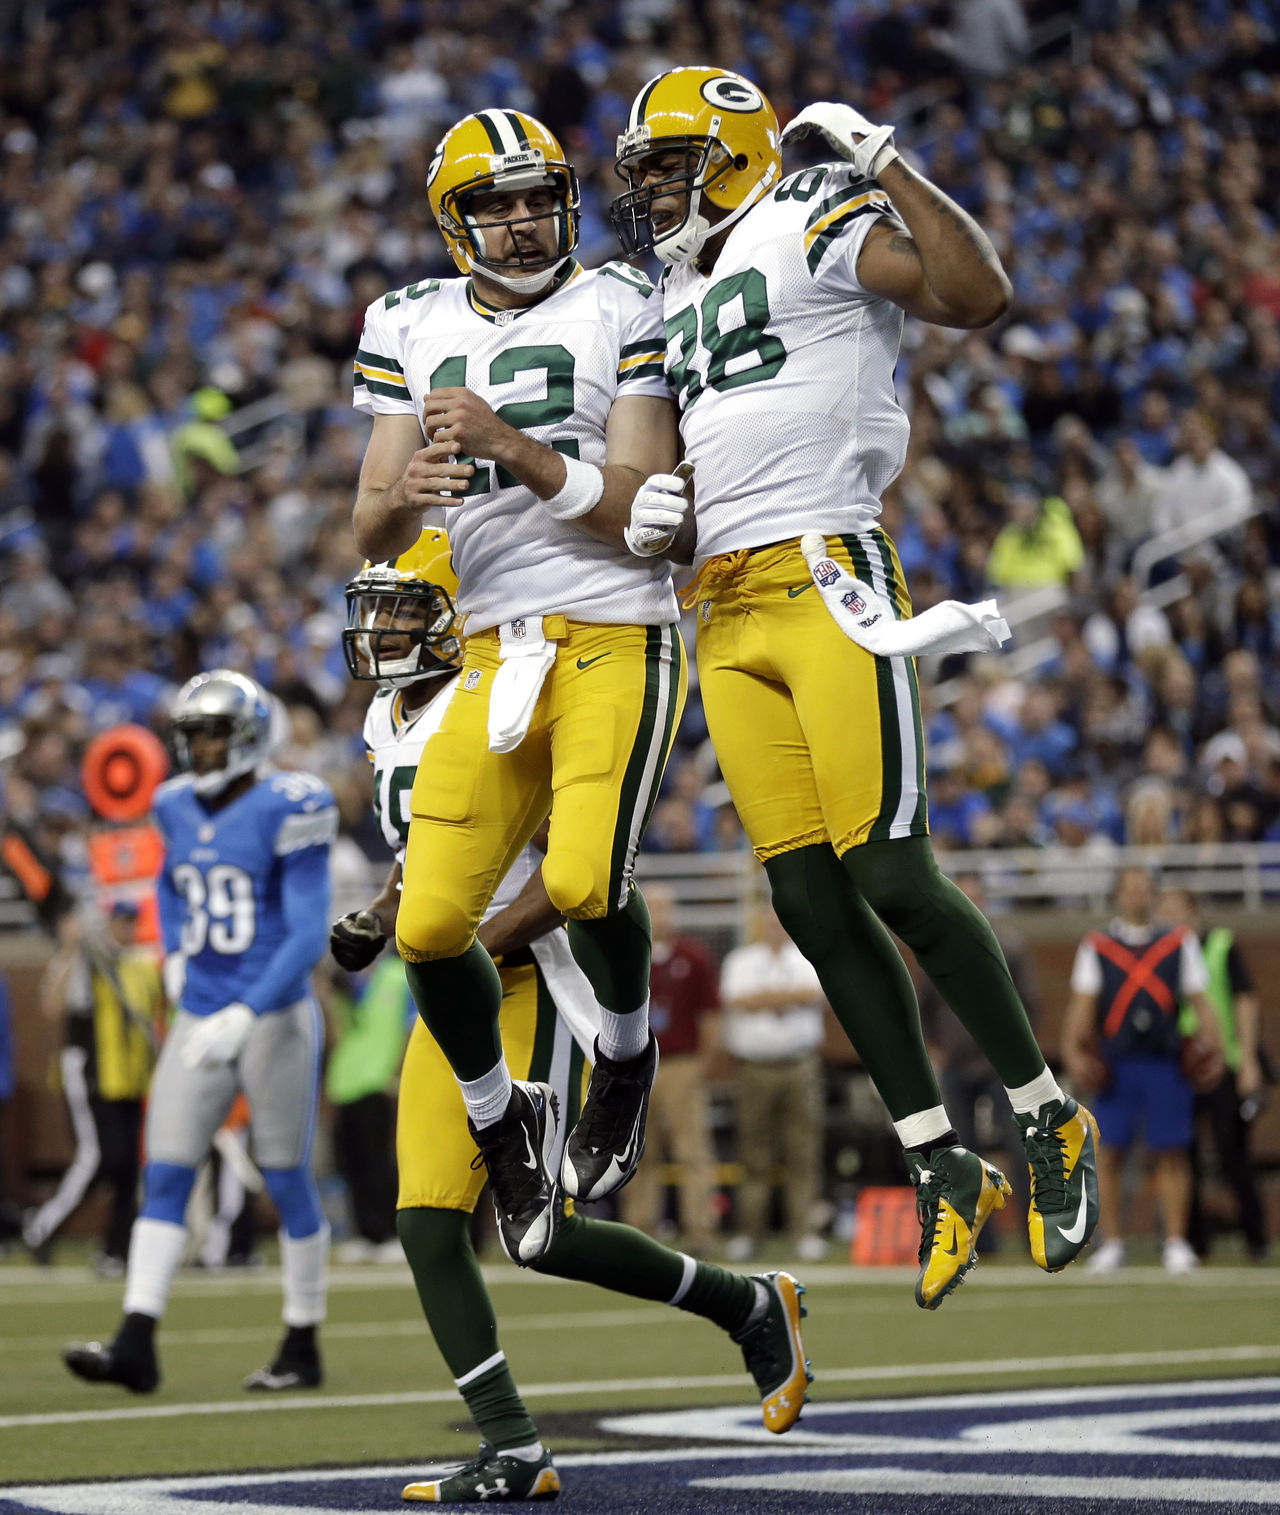 [NFL] Week 11: i Packers si impongono al Ford Field